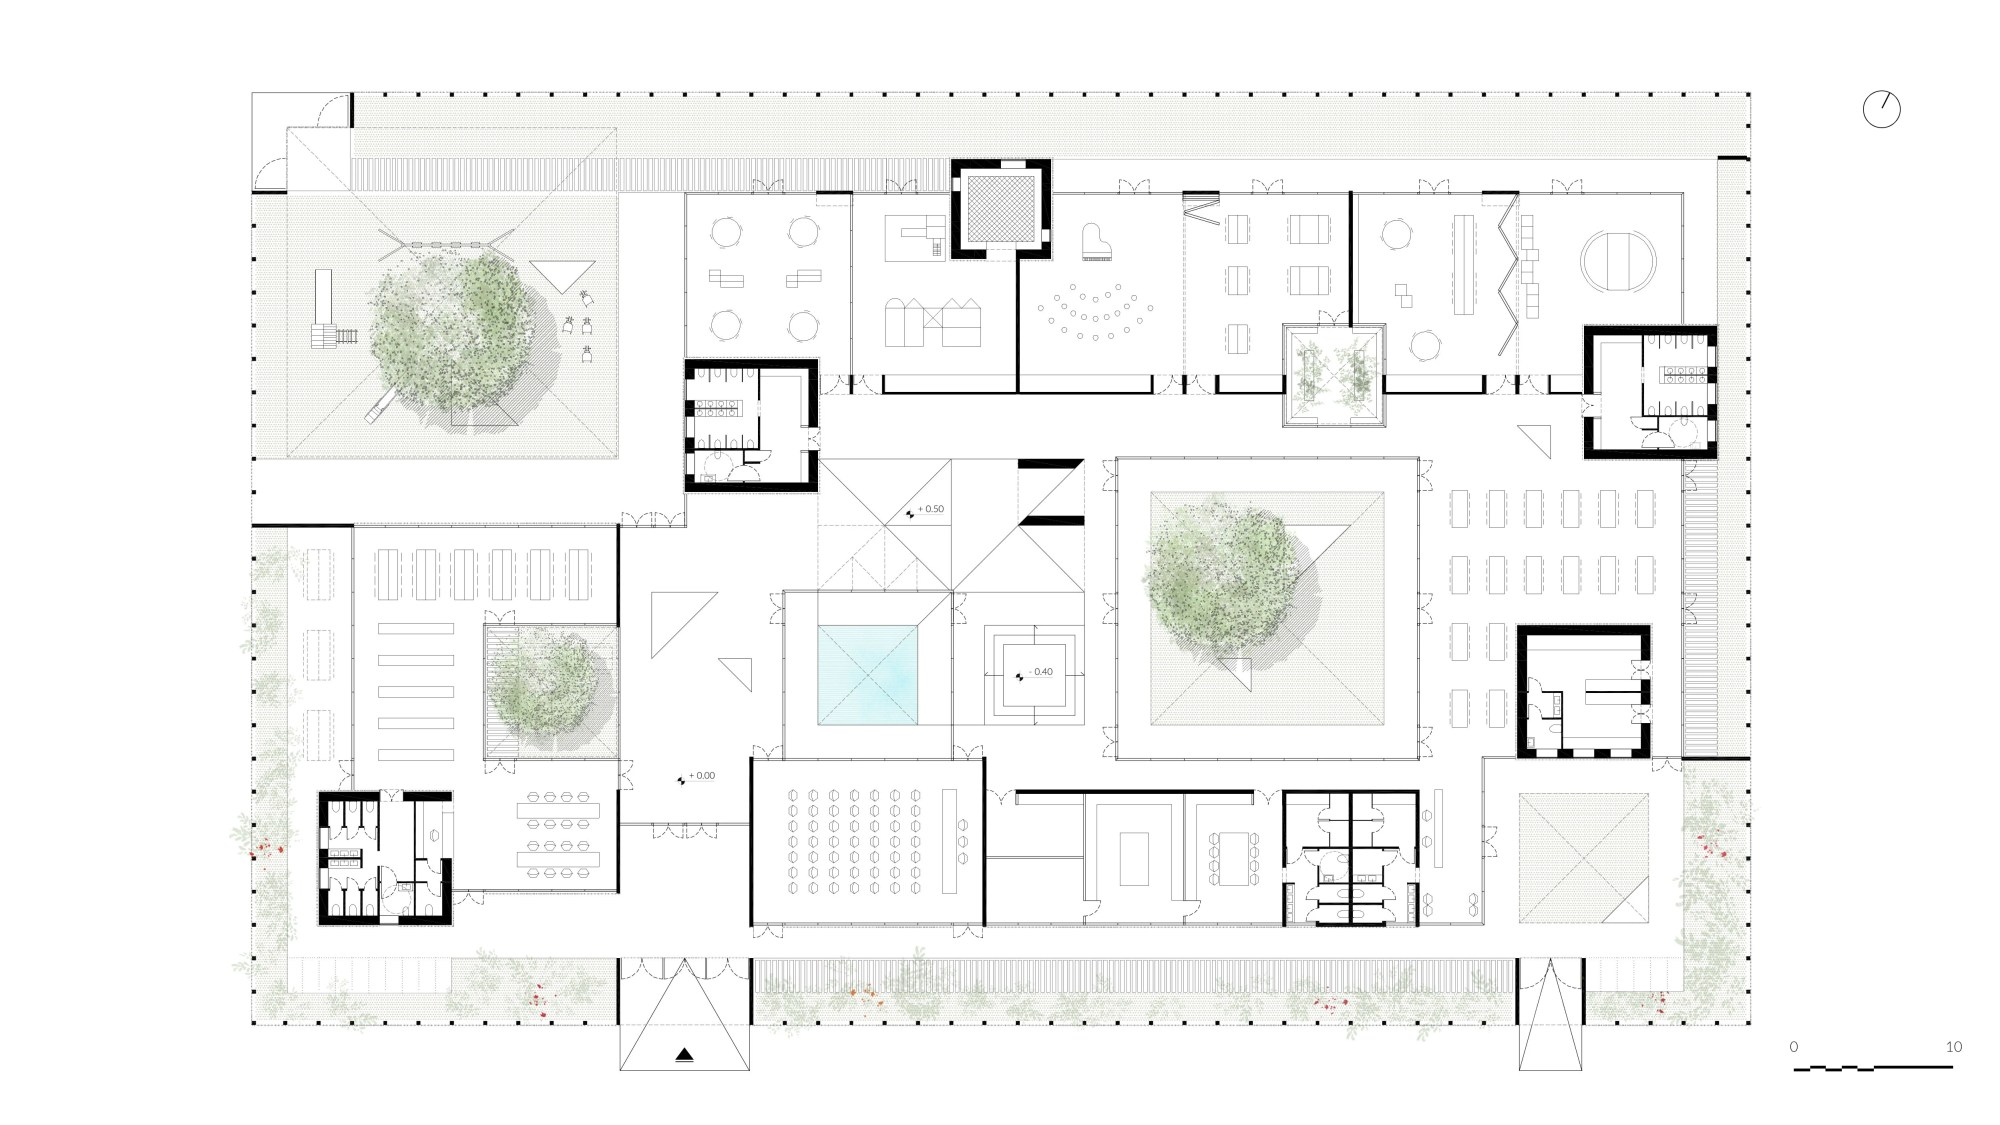 hight resolution of plans of schools u00b7 a collection curated by divisare